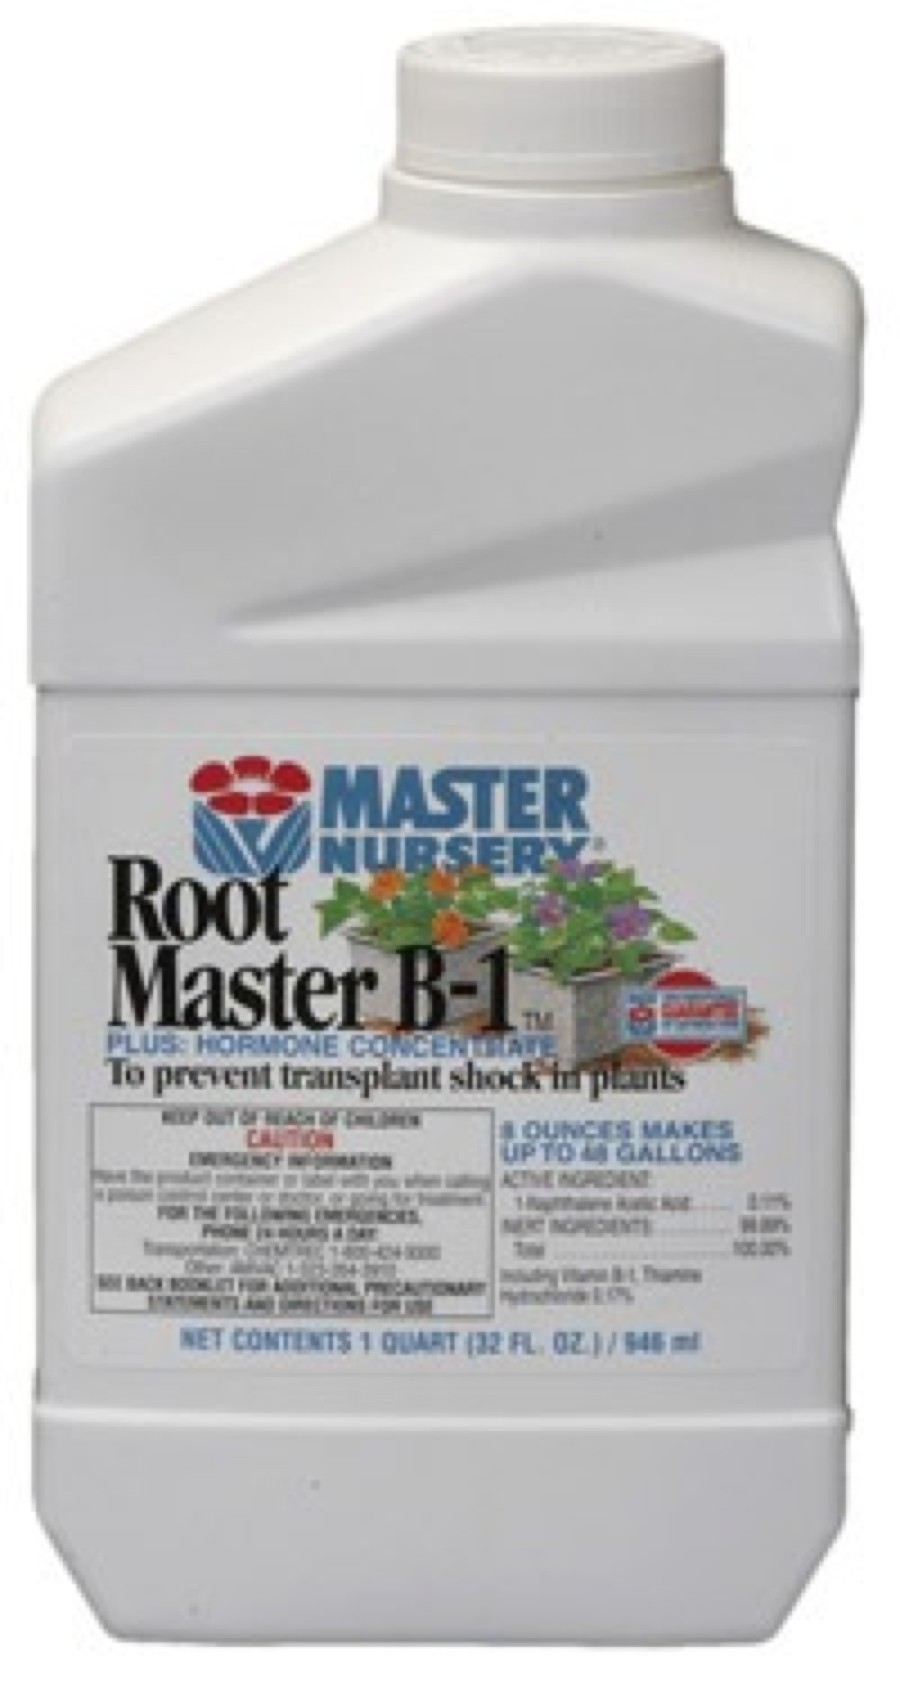 Master Nursery Root Master B1 Plus Hormone Concentrate